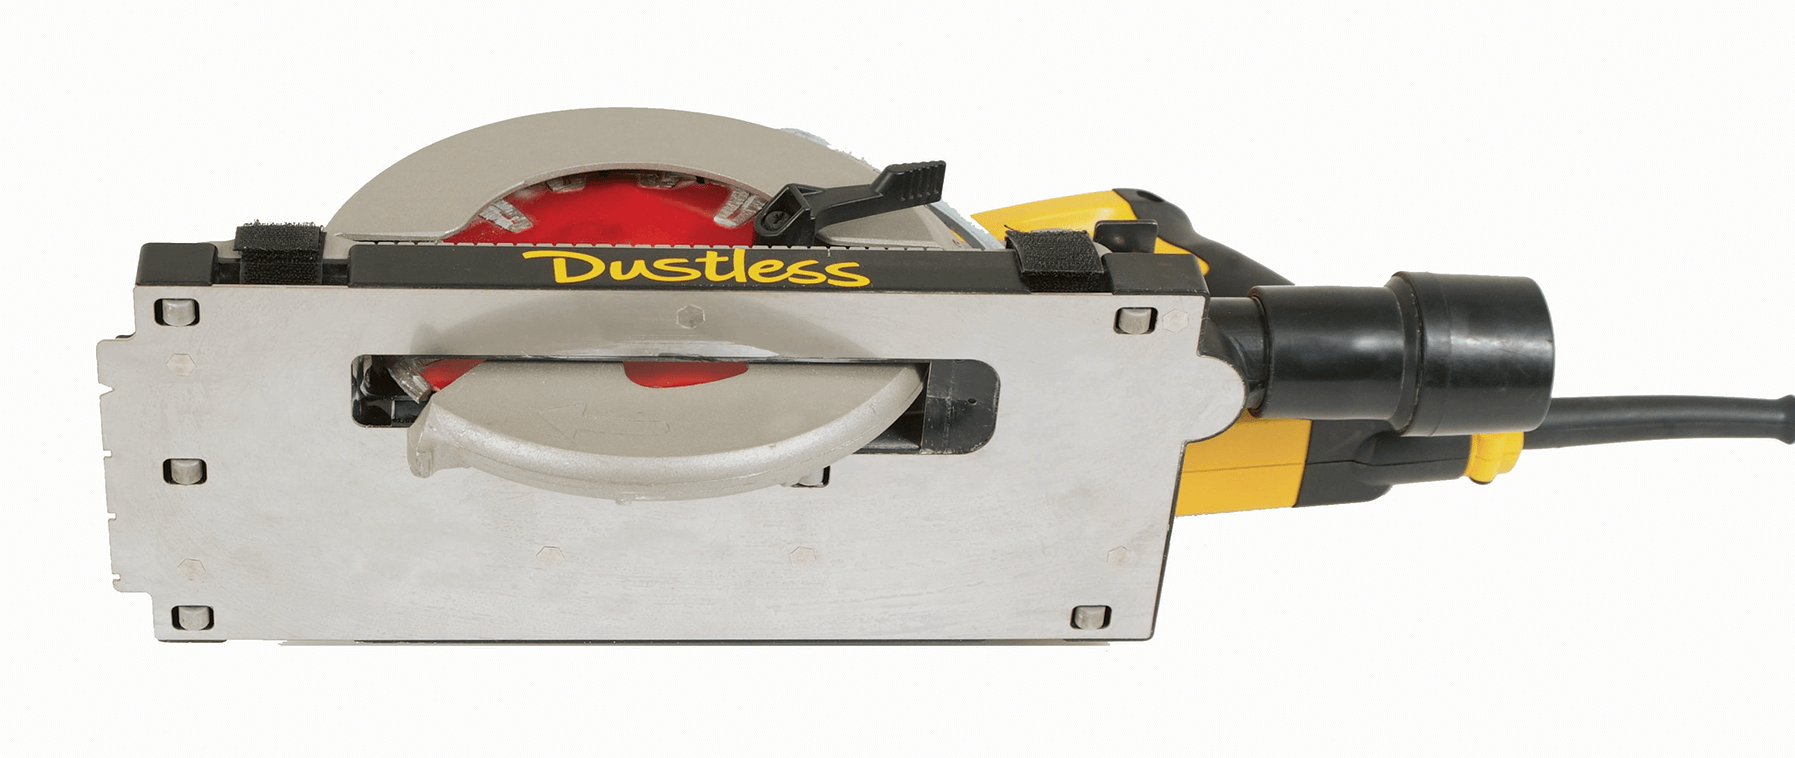 Stainless steel bottom & non-marking wheels are lightweight, durable, and smooth